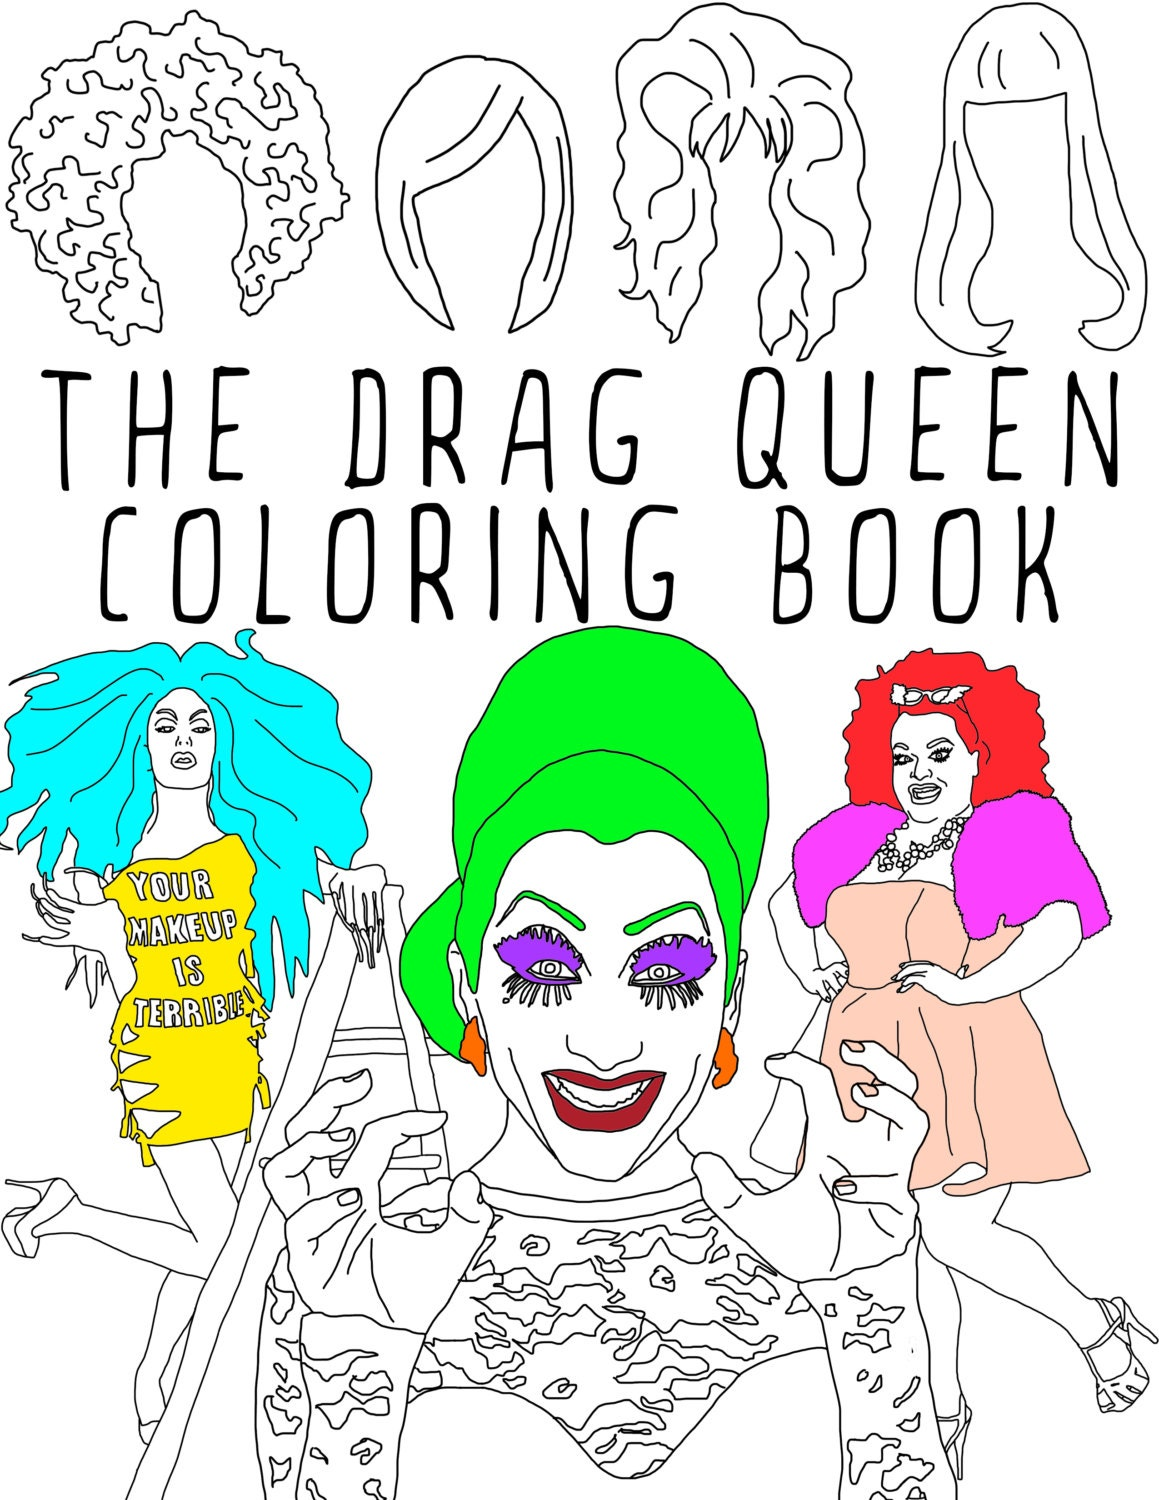 The Drag Queen Coloring Book Adult coloring book RuPaul | Etsy